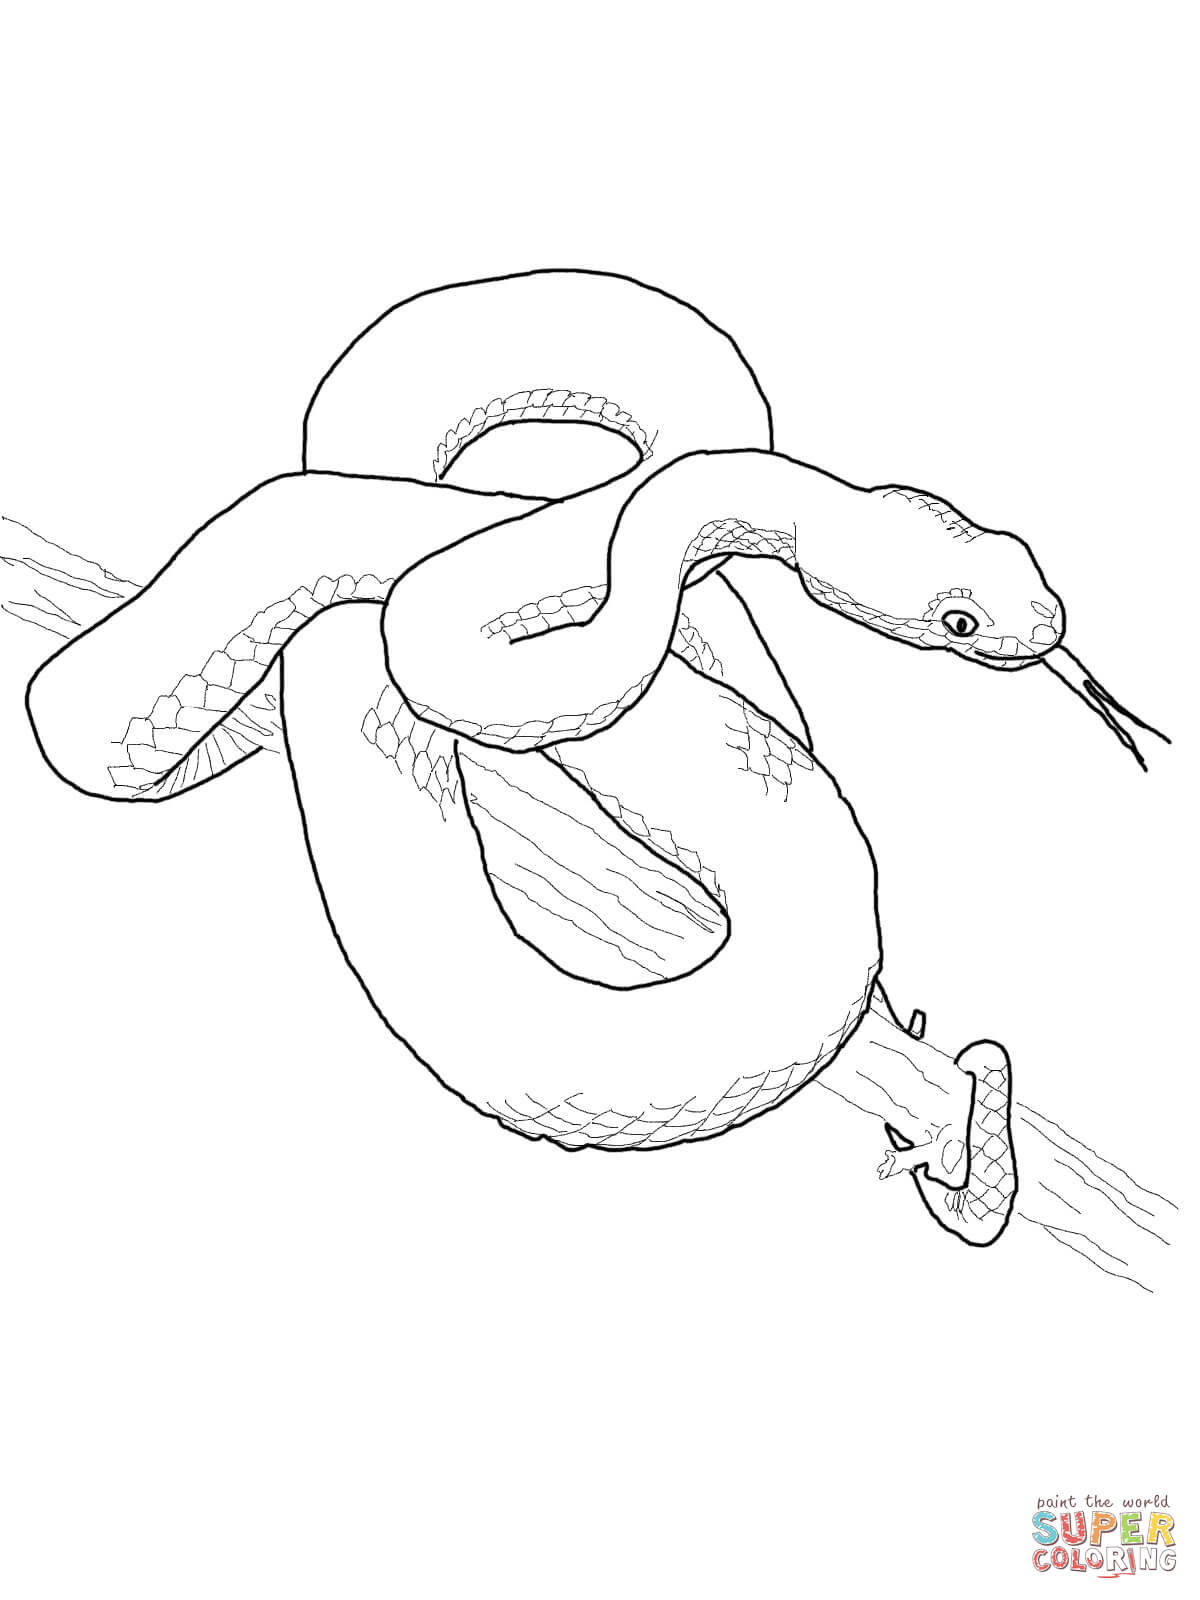 1200x1600 Northern Copperhead Snake And Timber Rattlesnake Coloring Page